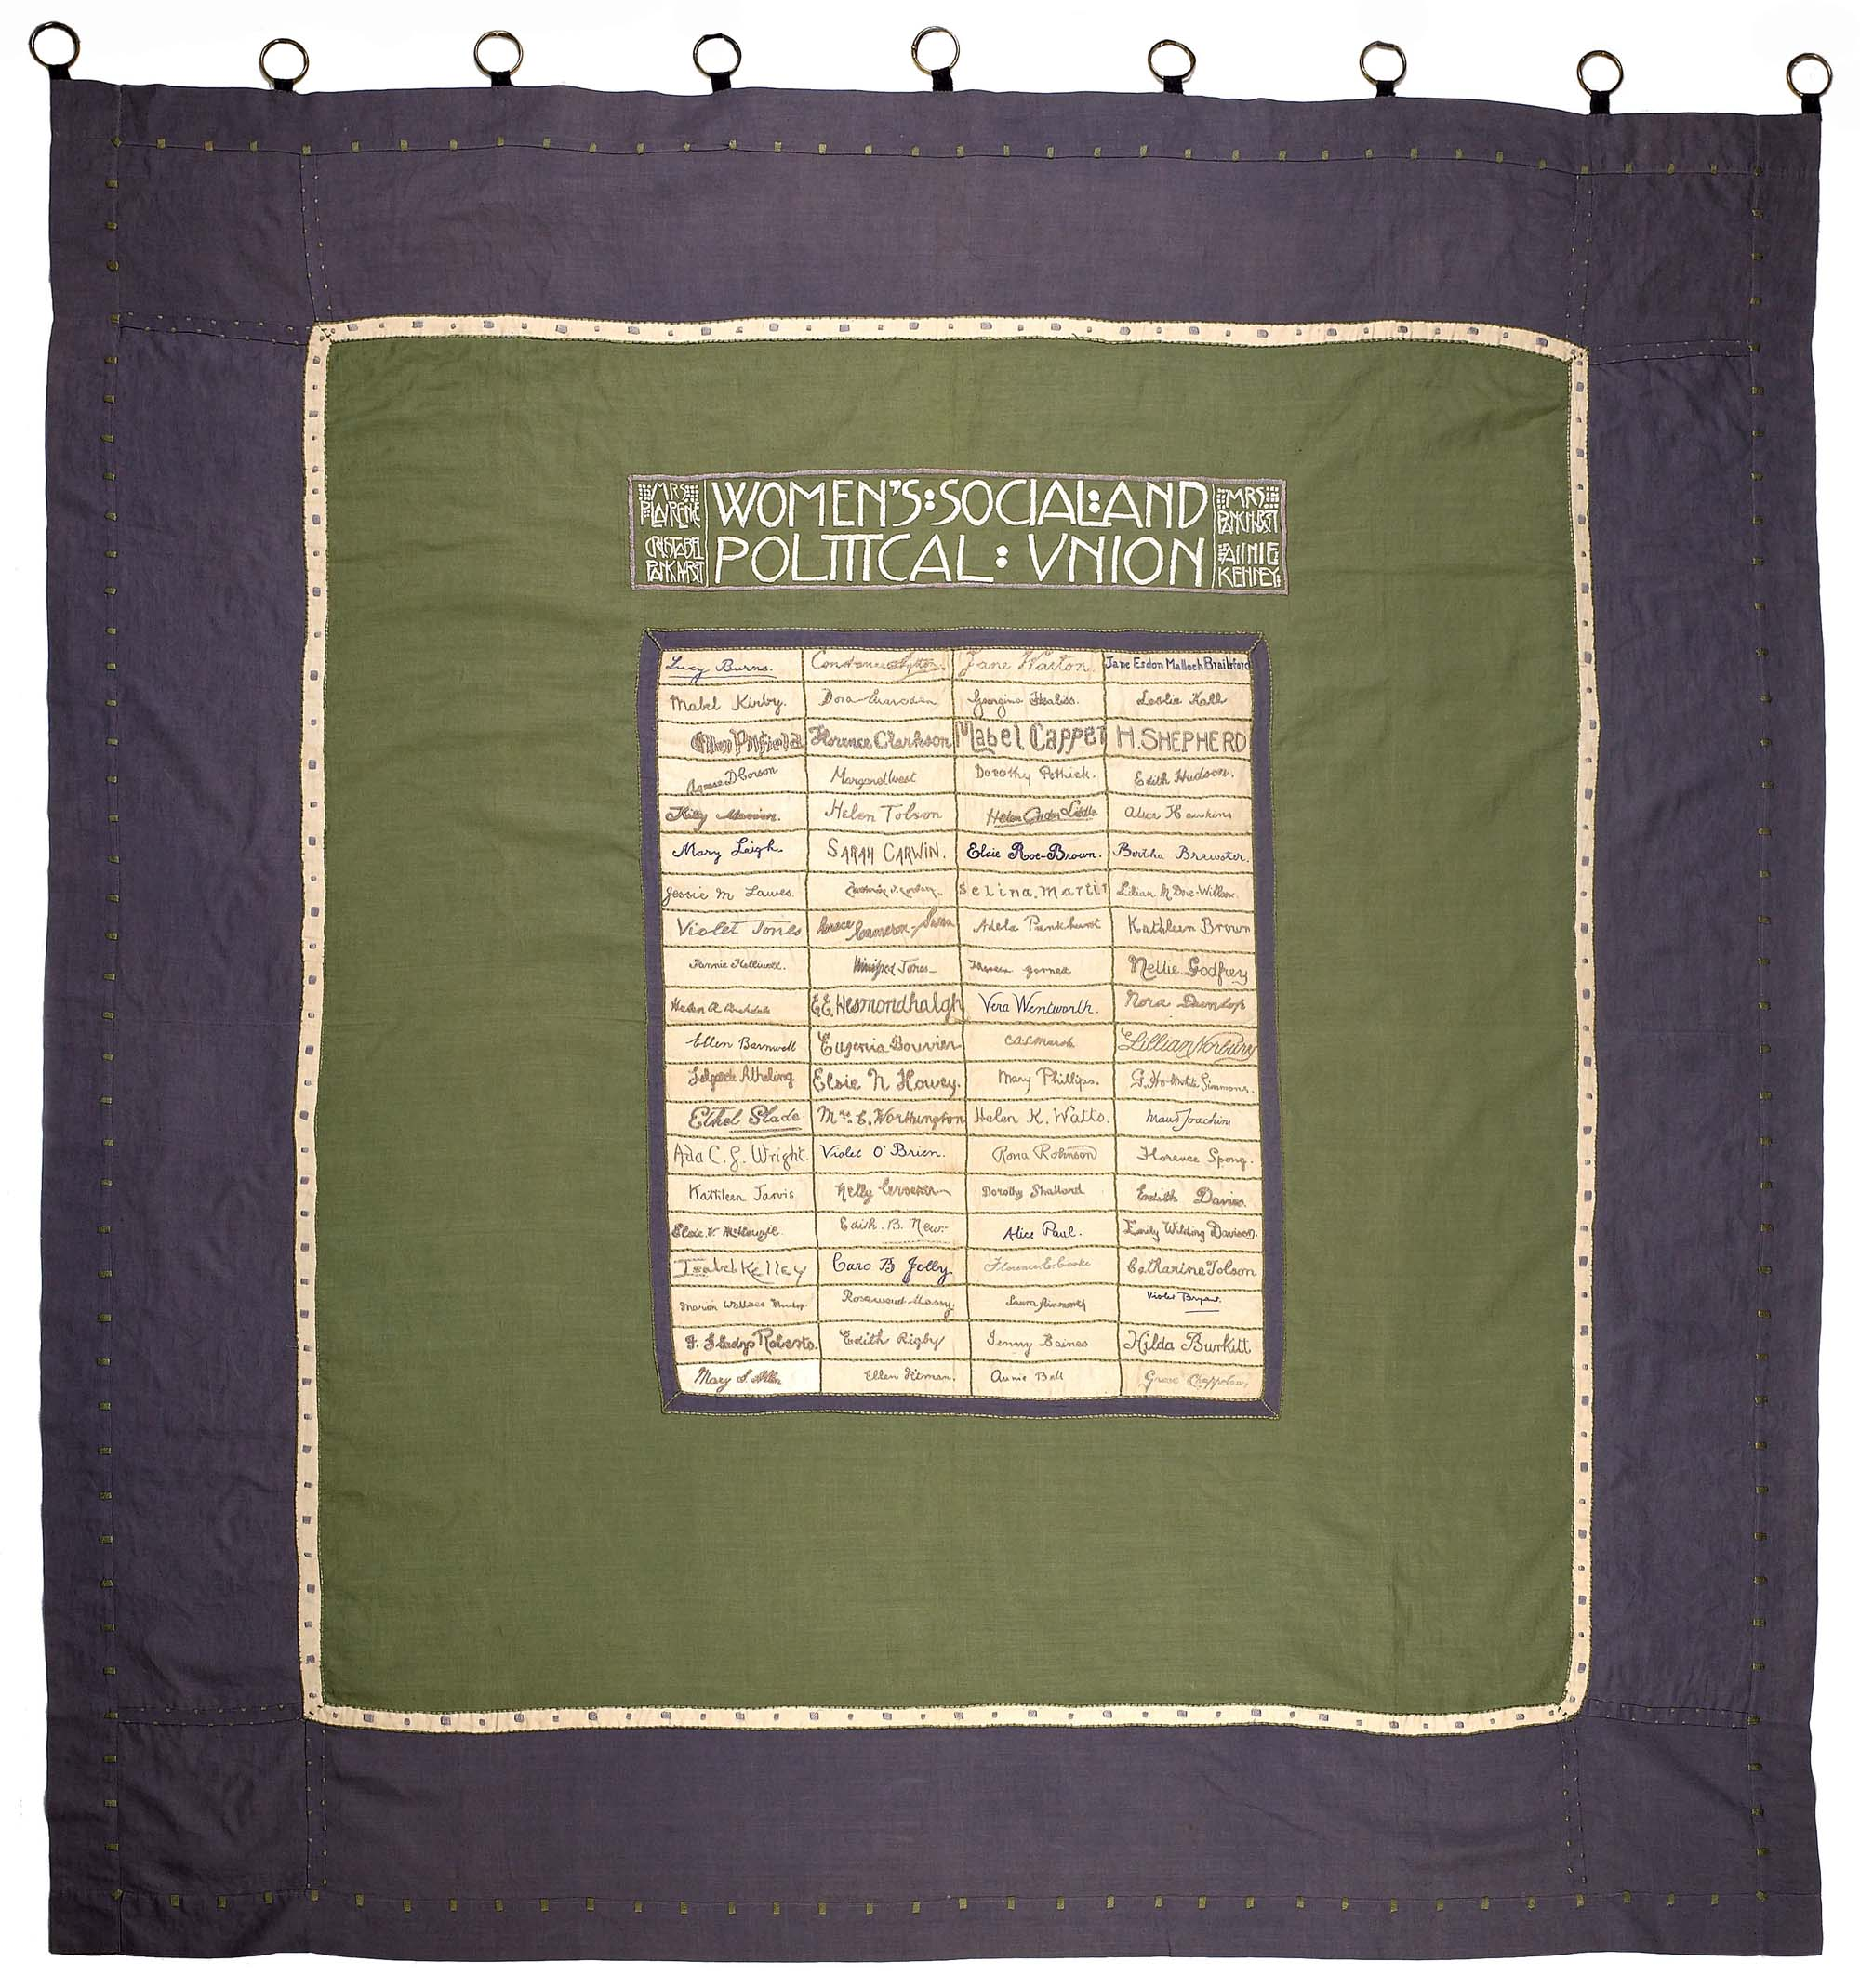 Rectangular. Purple, green and cream linen. Large rectangle pieced out of smaller rectangles, with the signatures of eighty women hunger-strikers embroidered in purple silk (a politicised version of the traditional 'friendship' quilt). 'Women's Social and Political Union' across the top in a Scottish art nouveau style. This banner was first carried in the From Prison to Citizenship procession in June 1910. It includes the embroidered signatures of 80 women